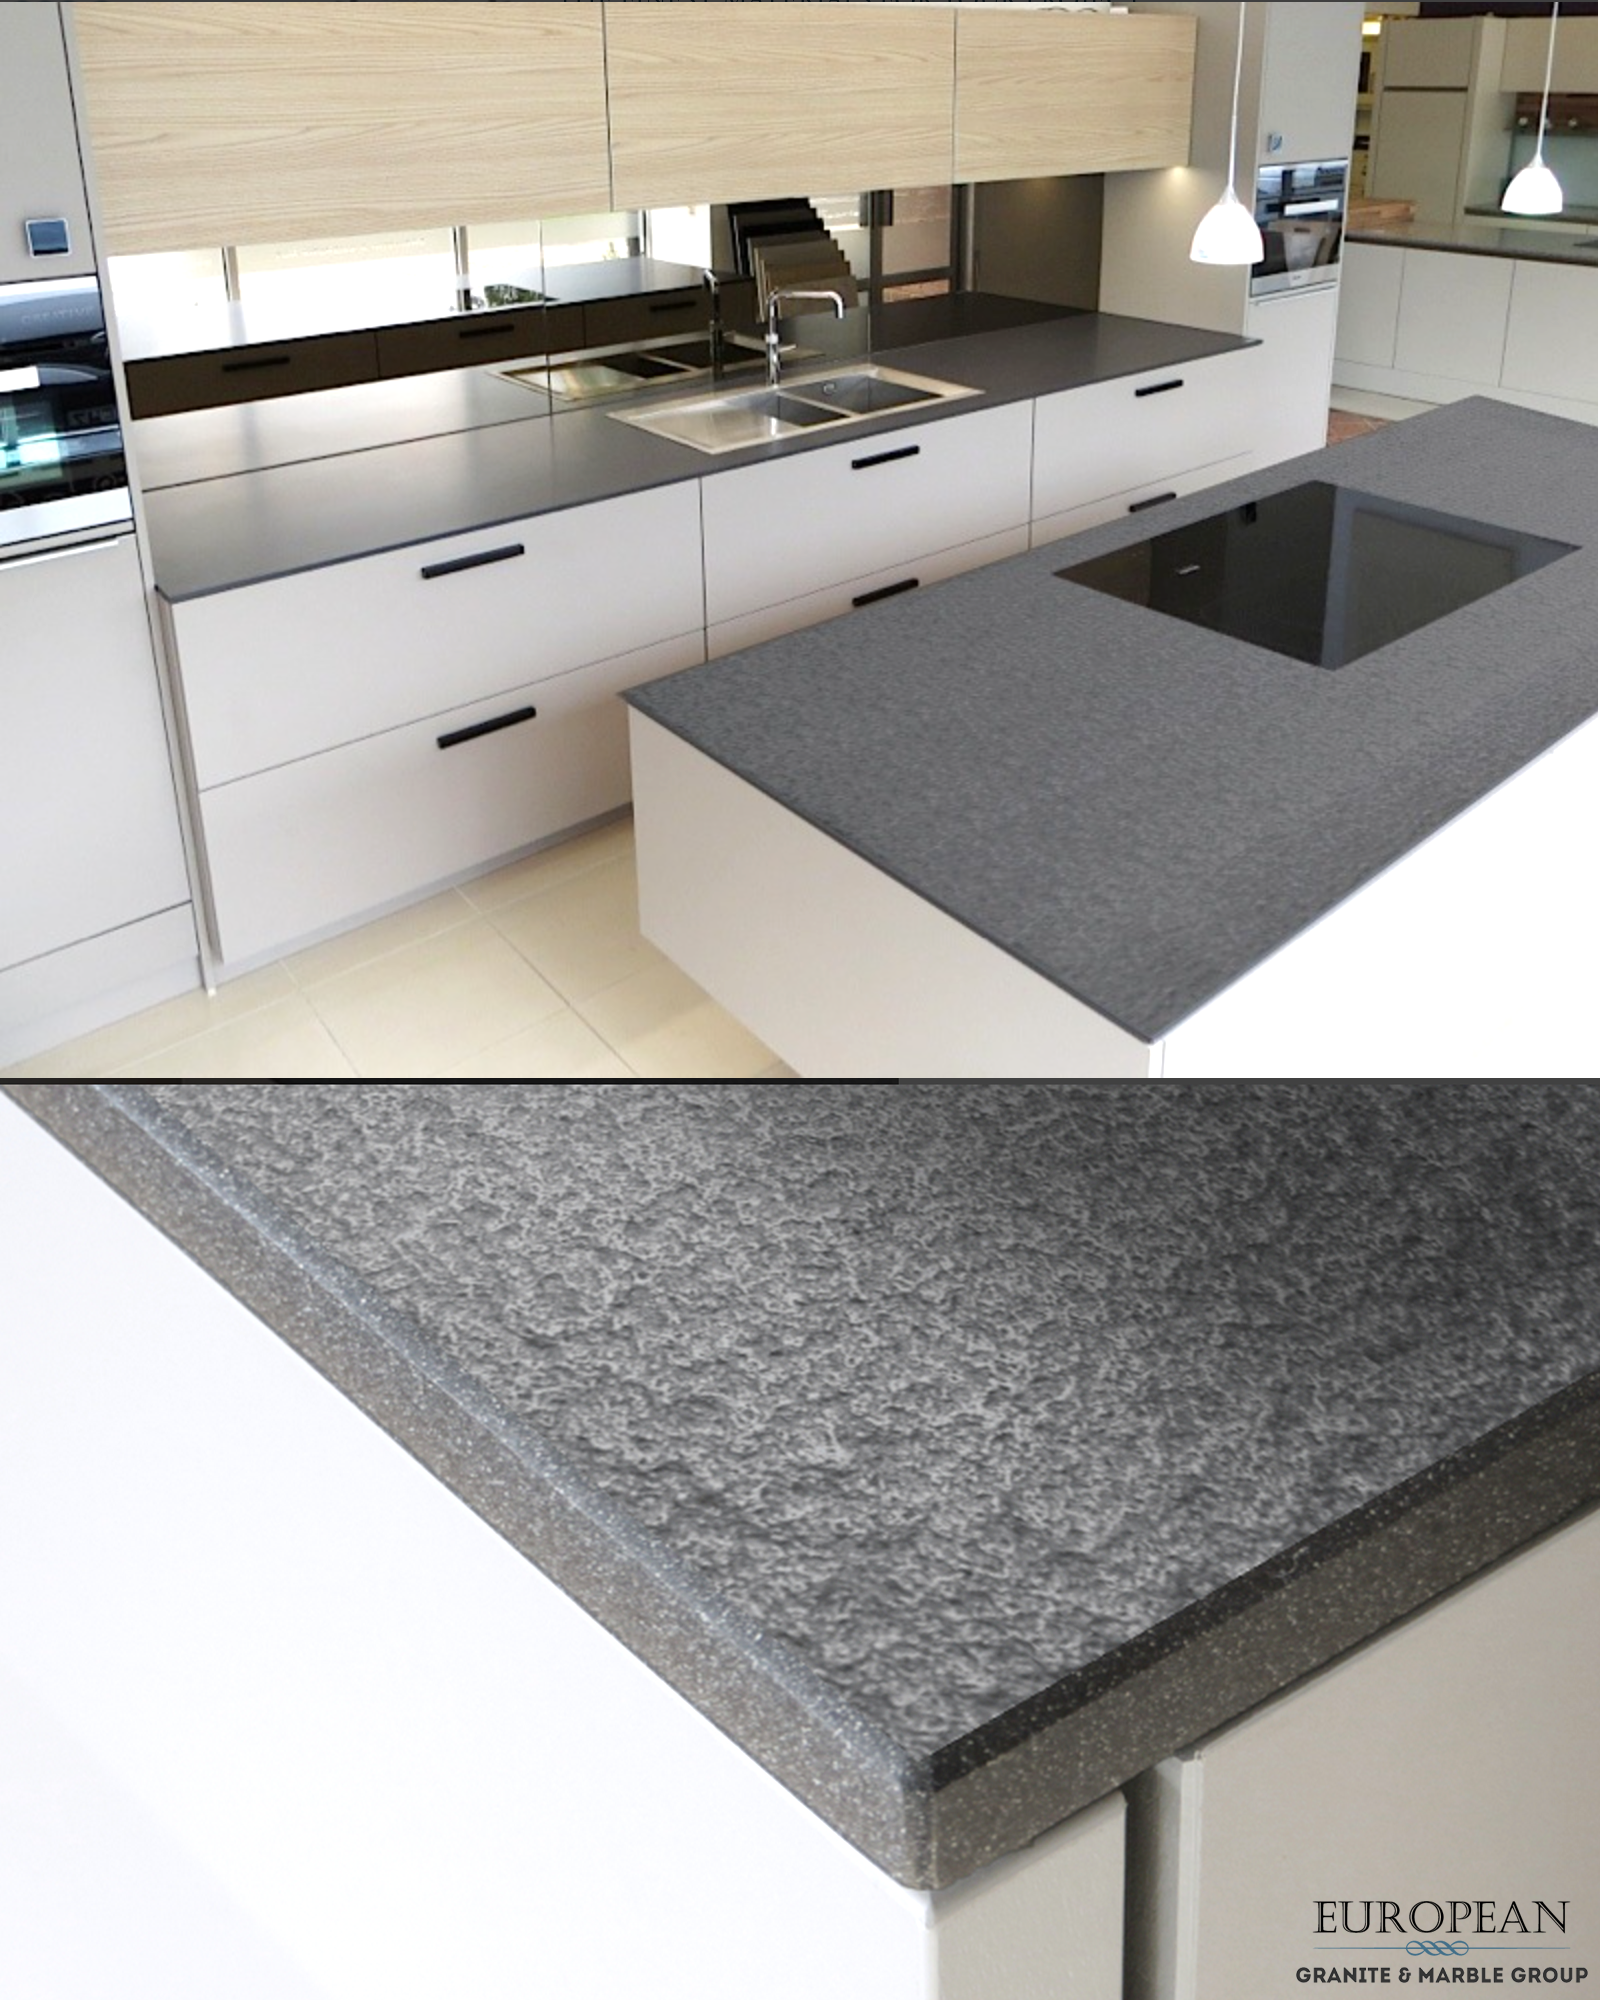 Quartz Countertops Stain Resistance Lapitec Is Highly Resistant To Scratches Abrasions High